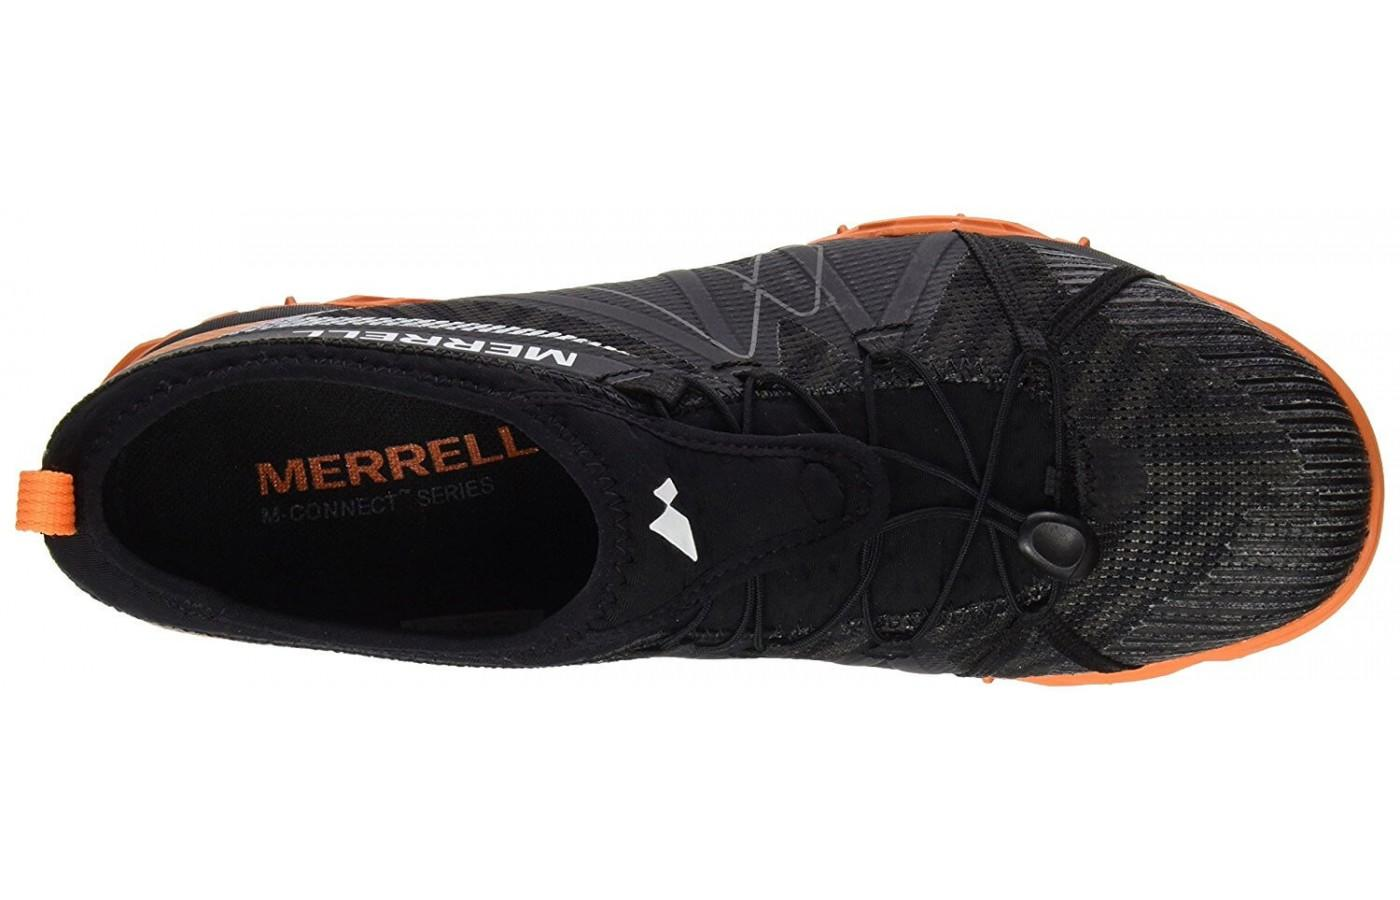 The upper of the Merrell Avalaunch Tough Mudder uses fabric and mesh for breathability